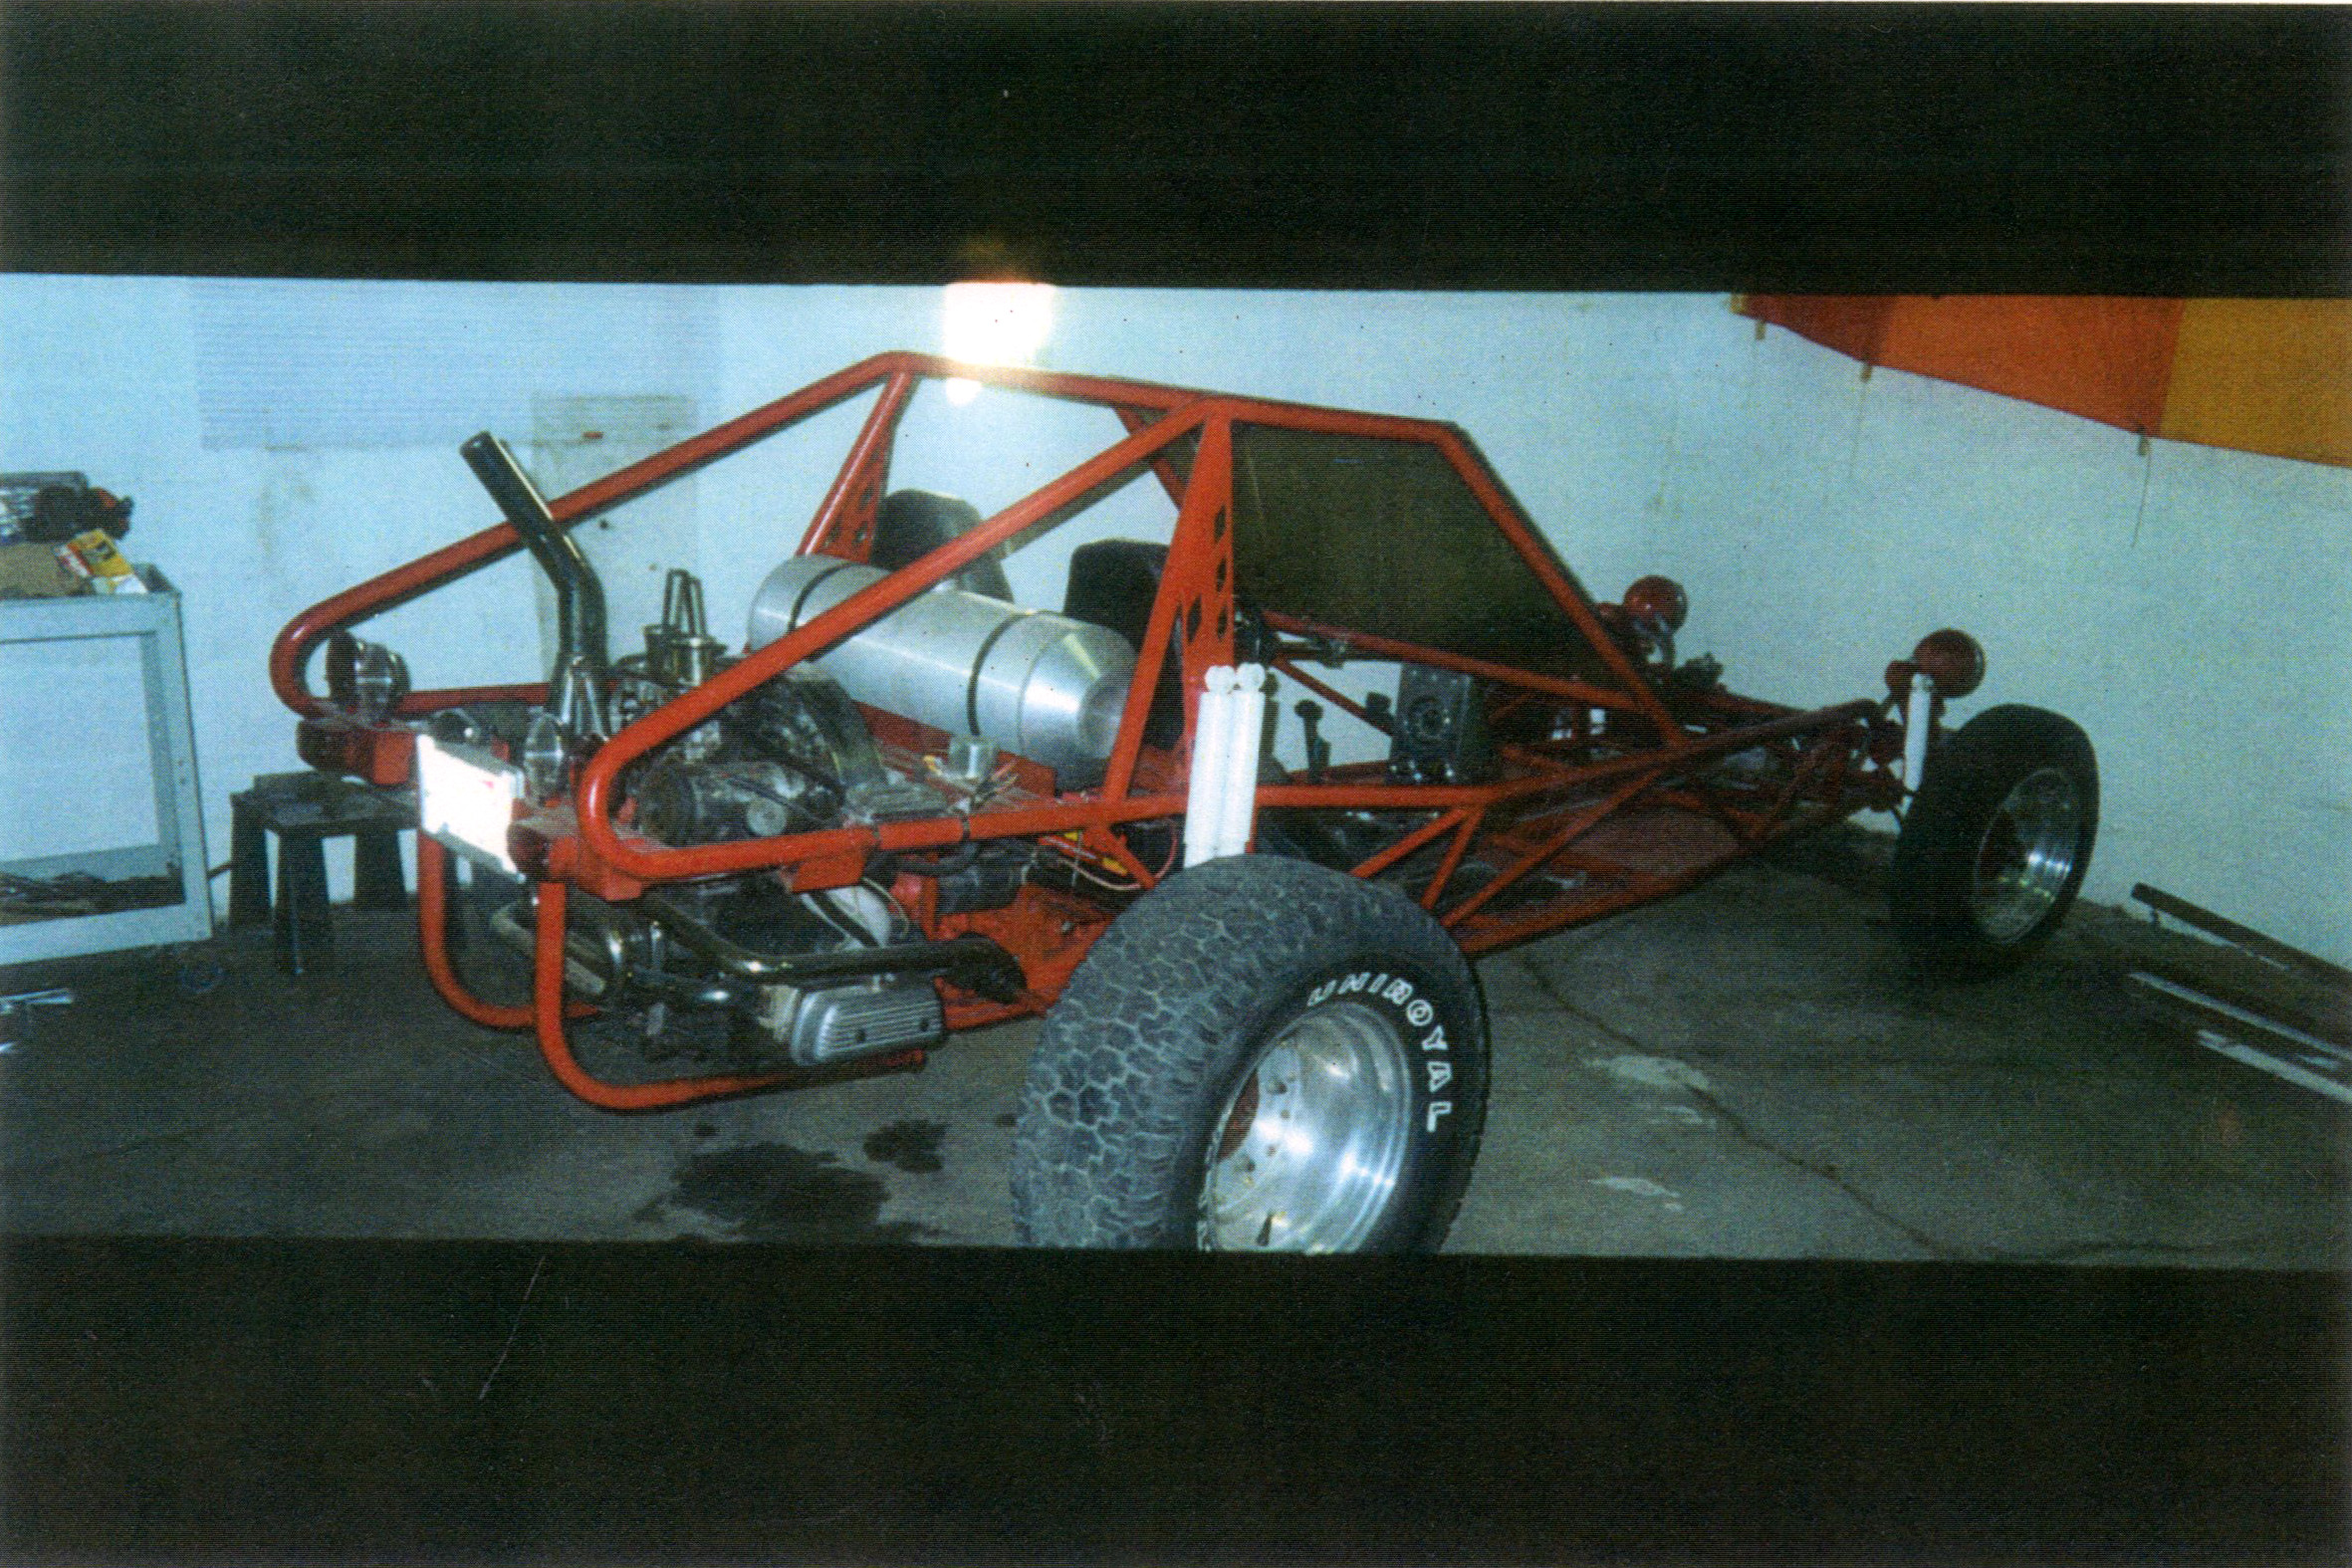 Mark built this dune buggy he is an auto union mechanic and has been a